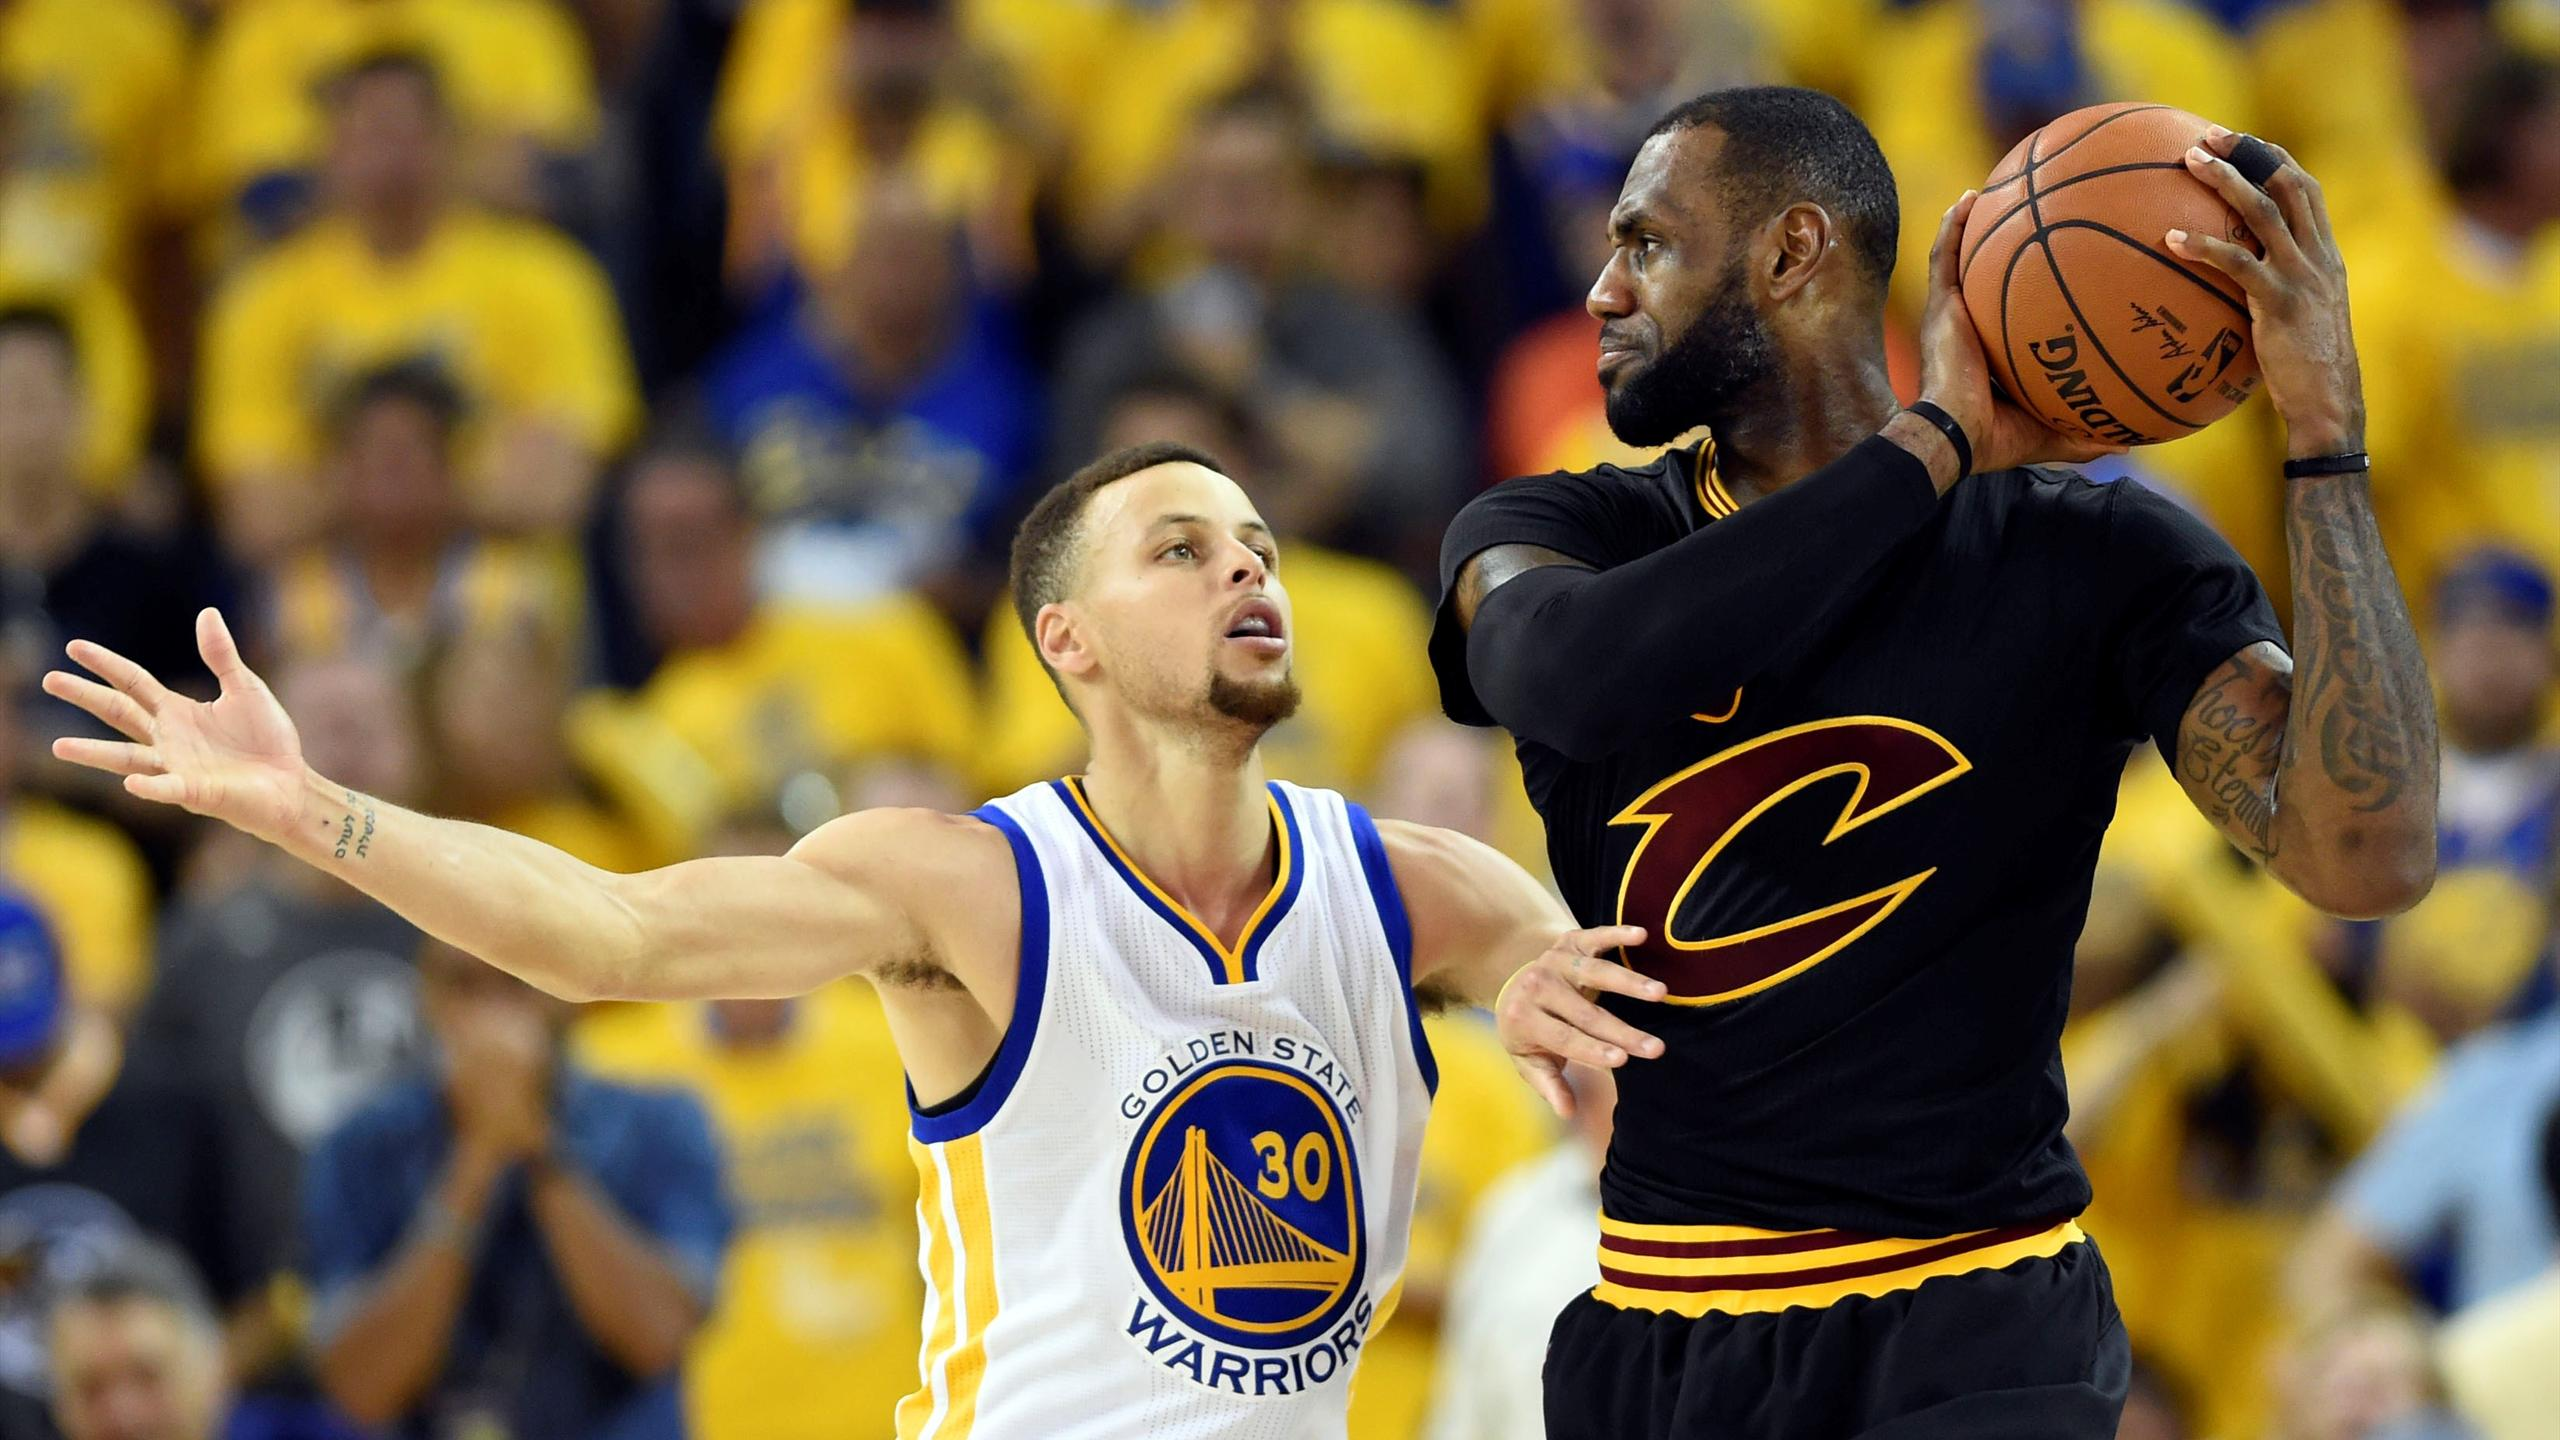 Cleveland Cavaliers forward LeBron James (23) handles the ball against Golden State Warriors guard Stephen Curry (30) during the third quarter in game seven of the NBA Finals at Oracle Arena